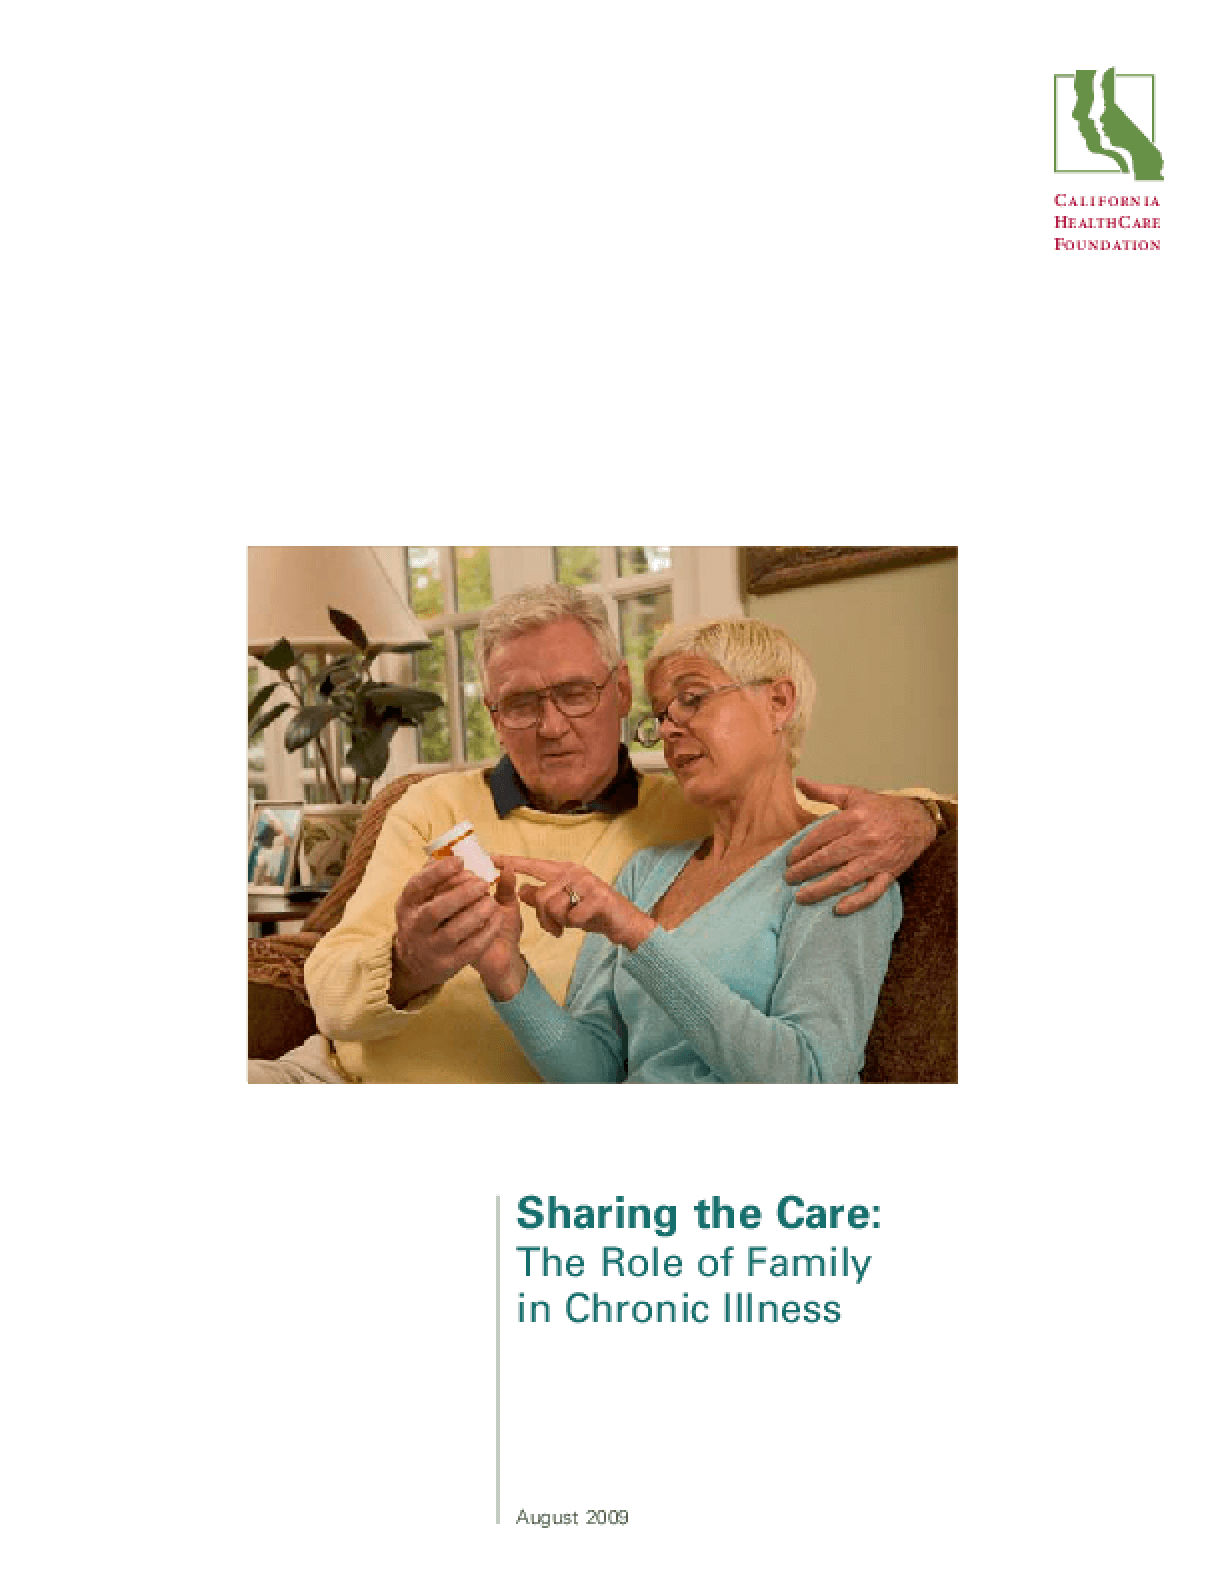 Sharing the Care: The Role of Family in Chronic Illness